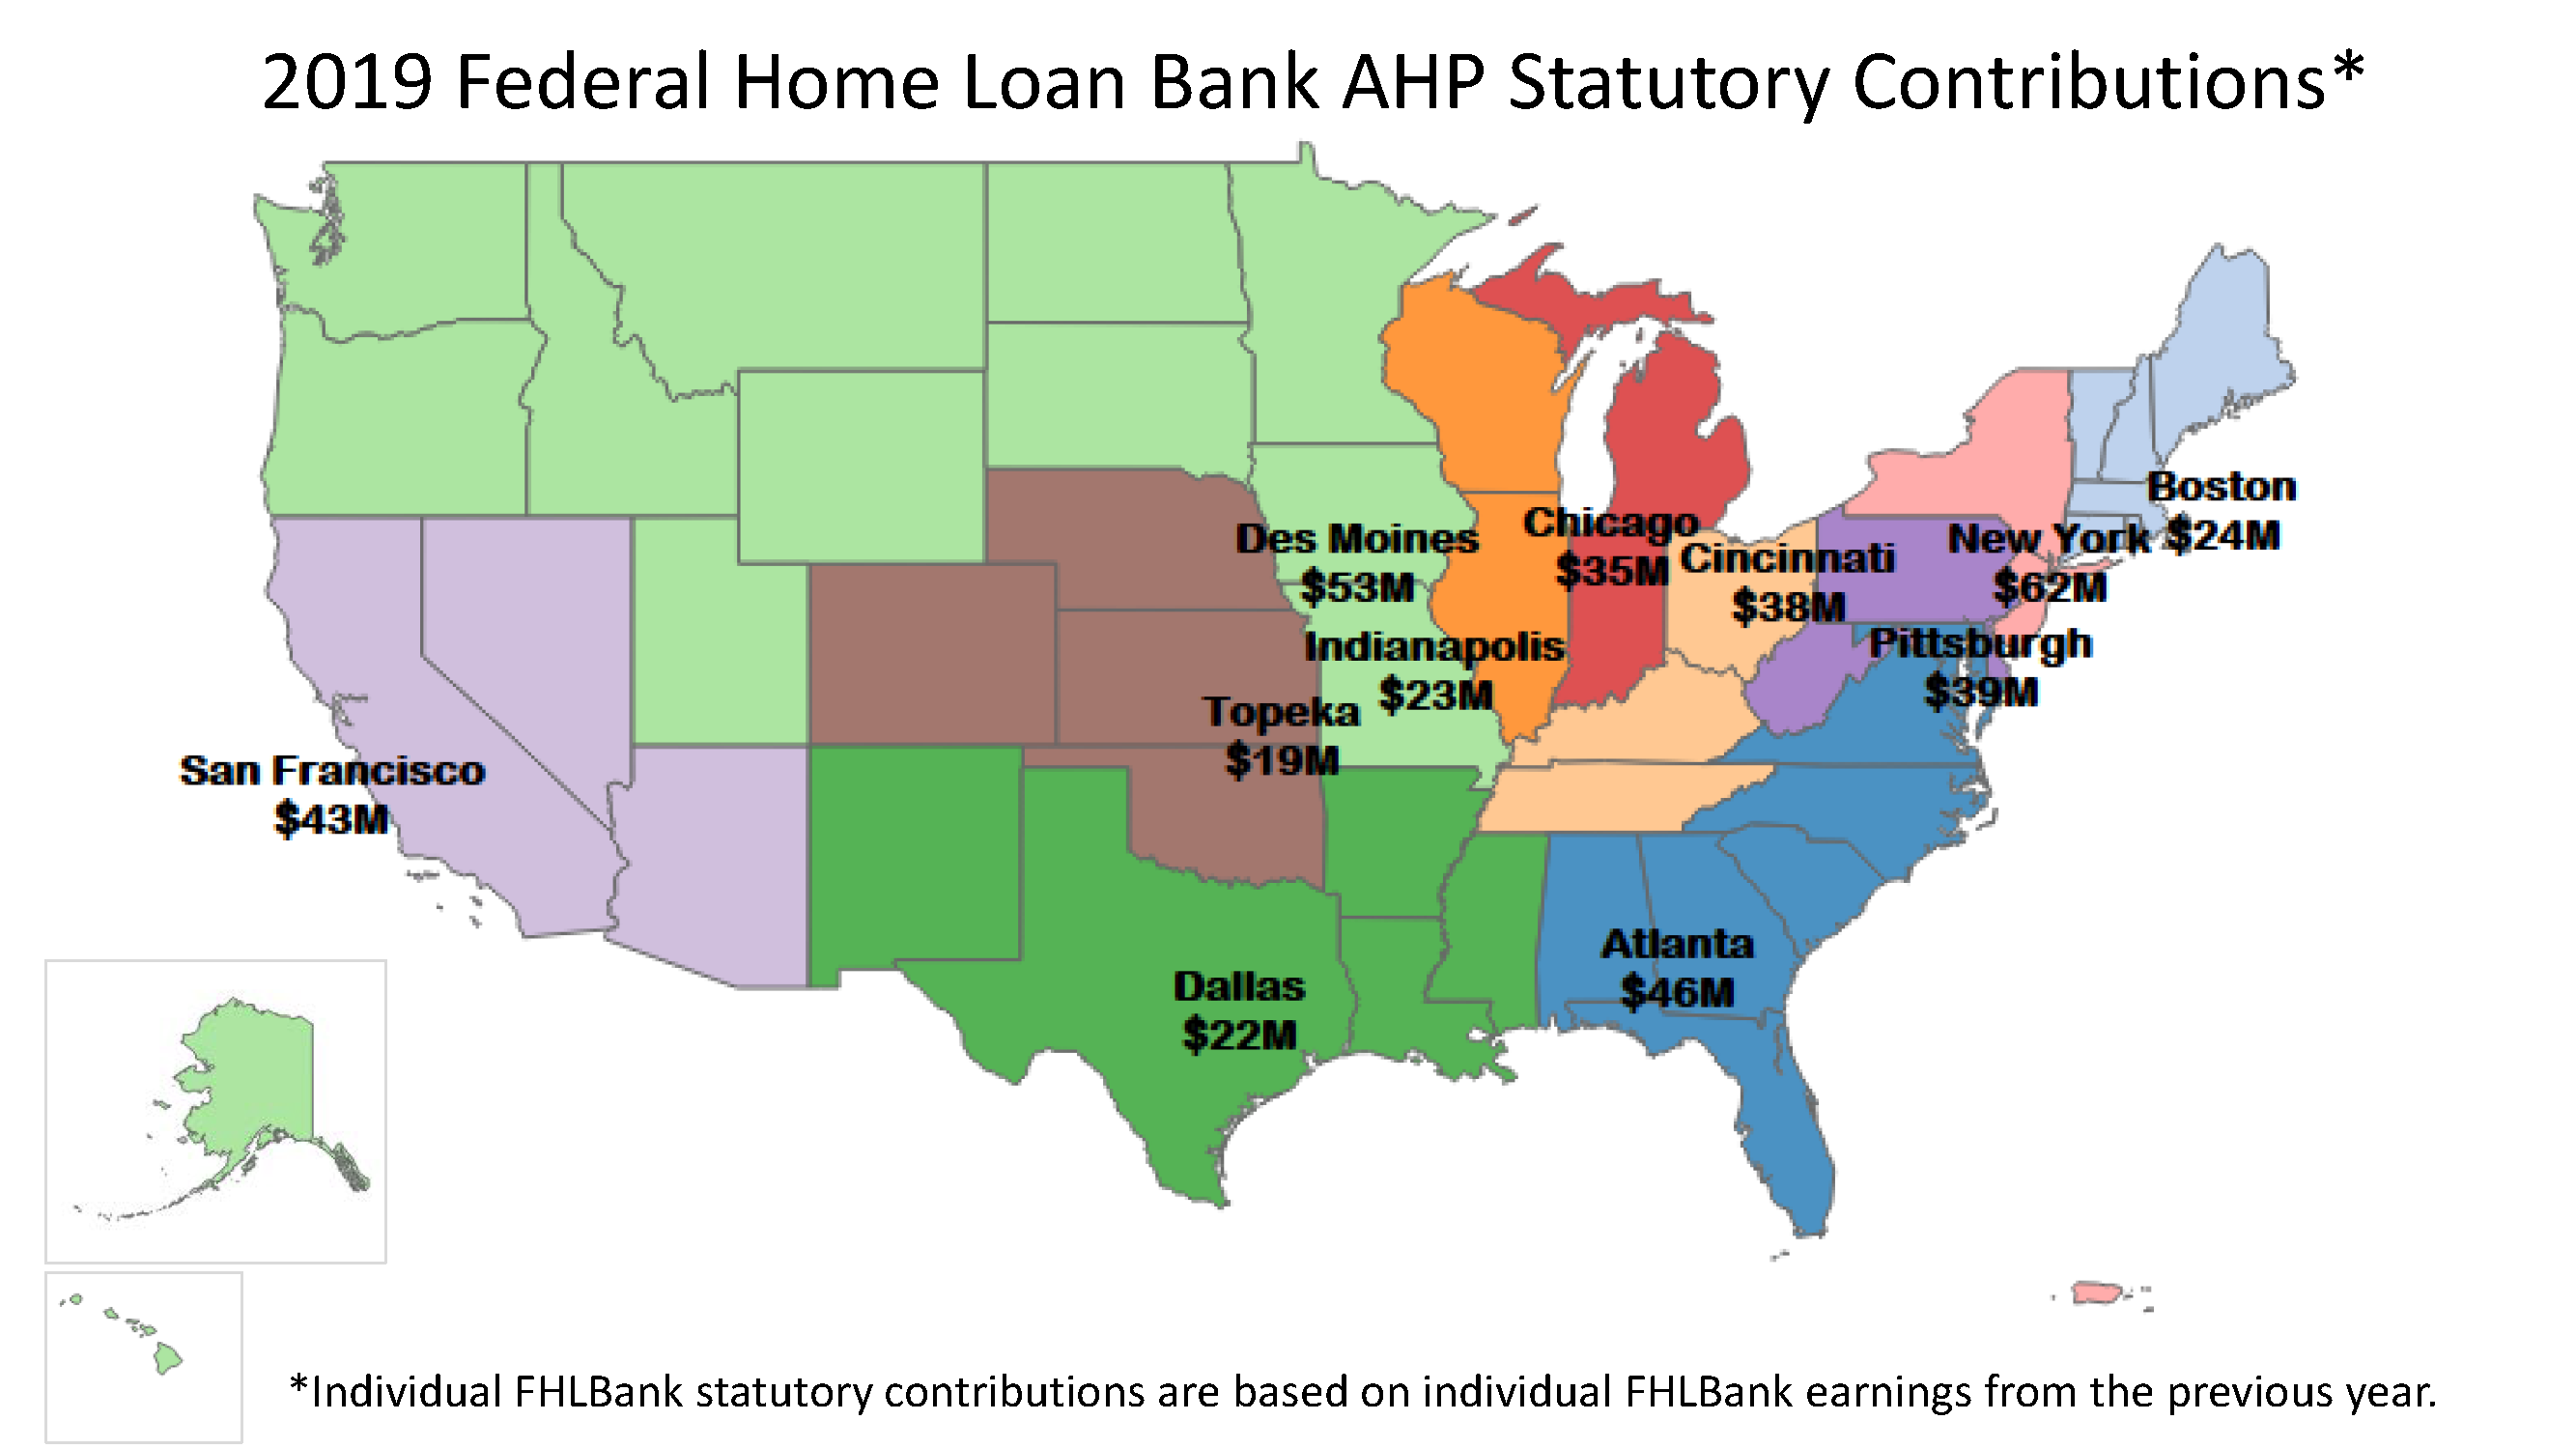 2019 FHL Bank statutory contributions map thumbnail